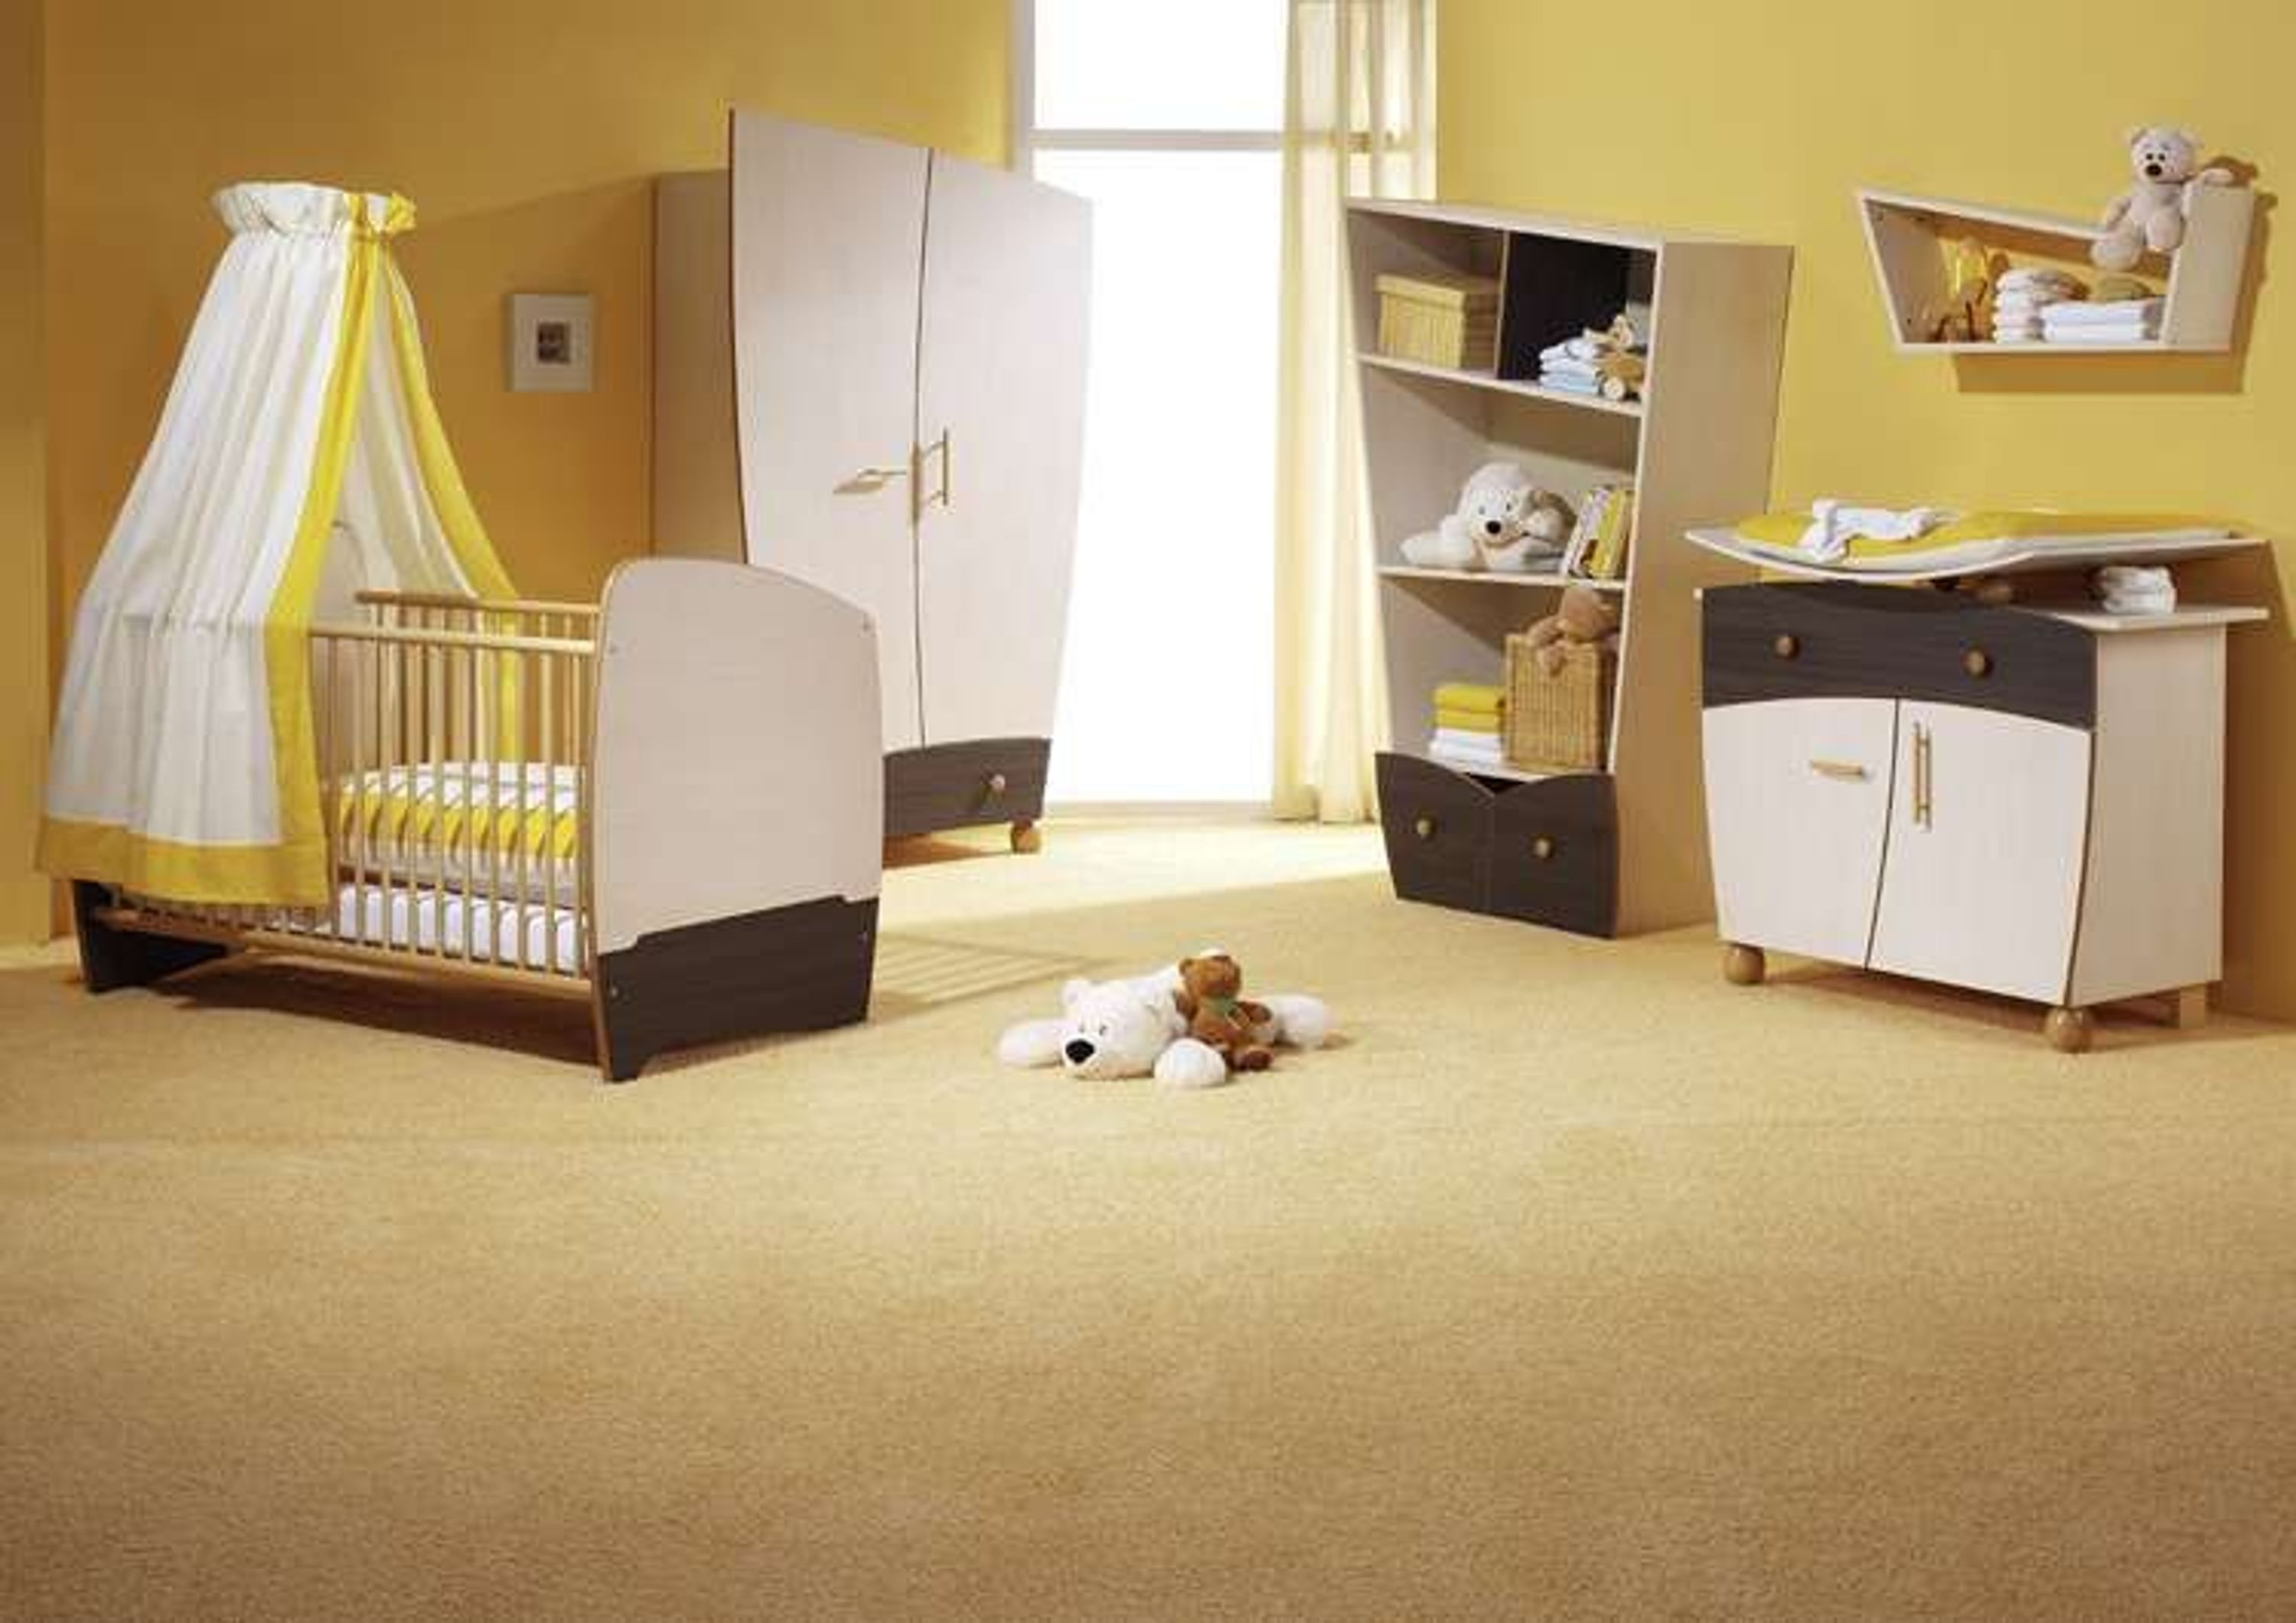 taube kinderzimmer babyzimmer fantasia ahorn braun bett kommode schrank kaufen bei. Black Bedroom Furniture Sets. Home Design Ideas